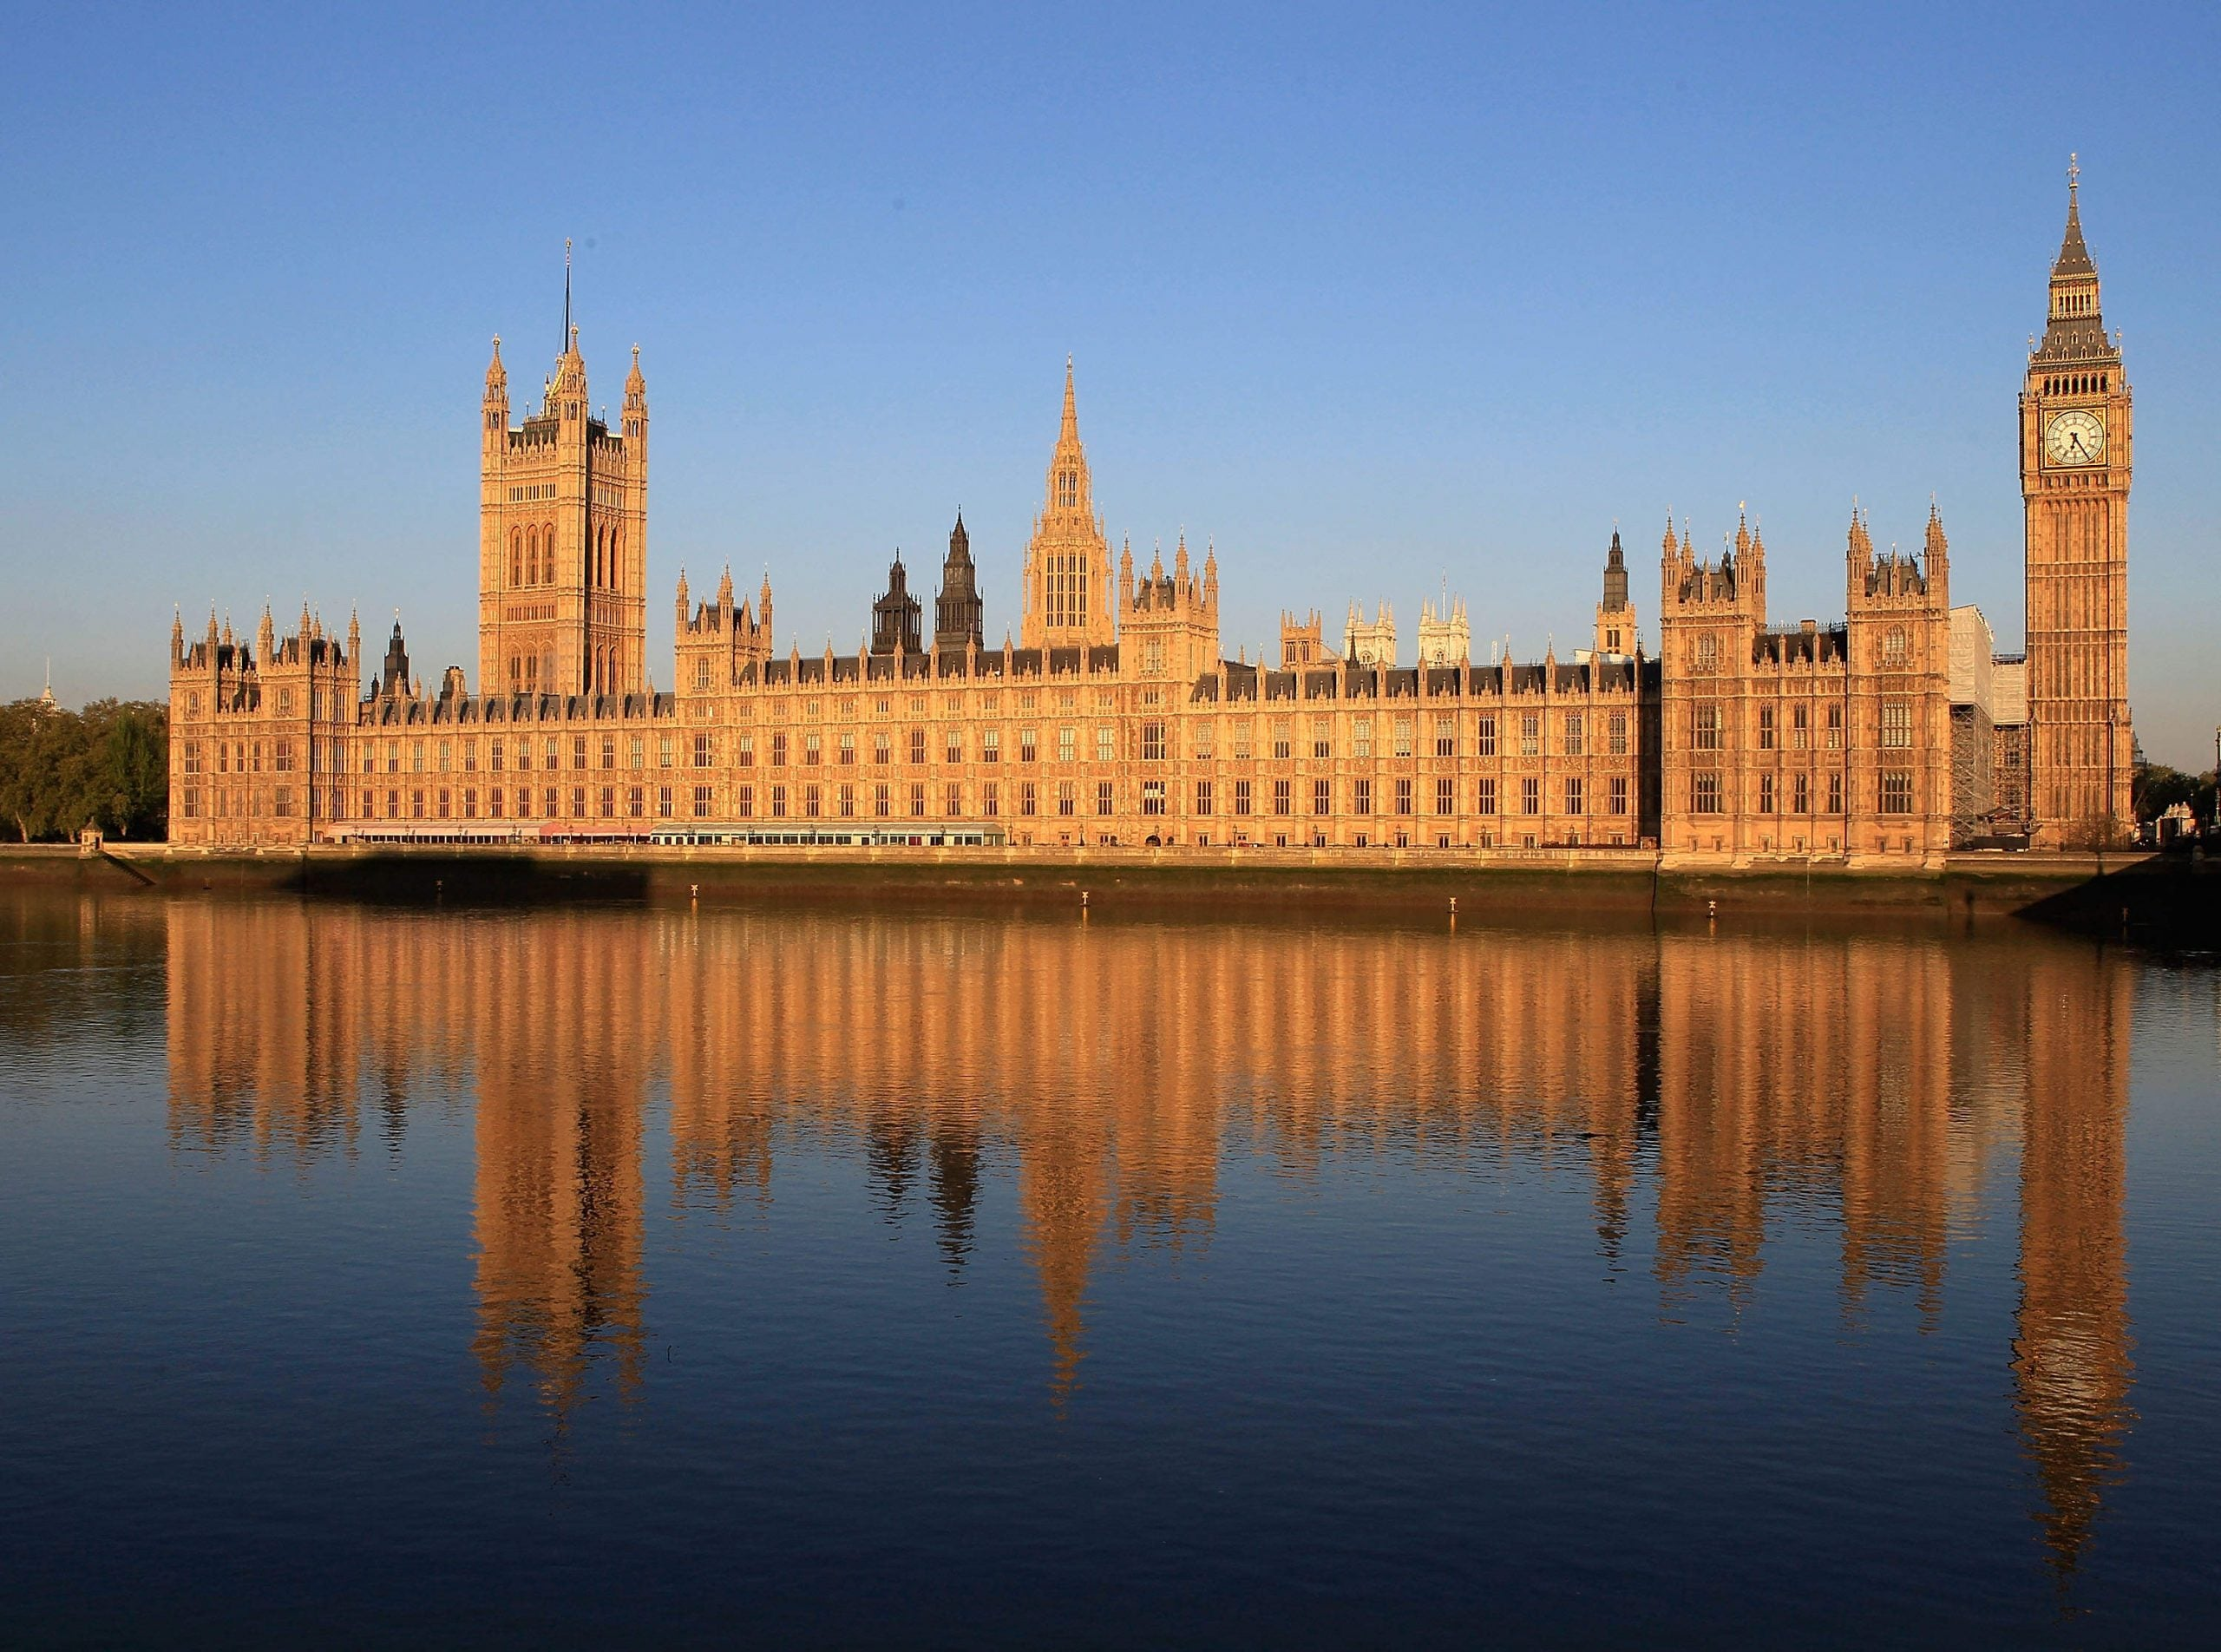 Parliament must better reflect the country it represents